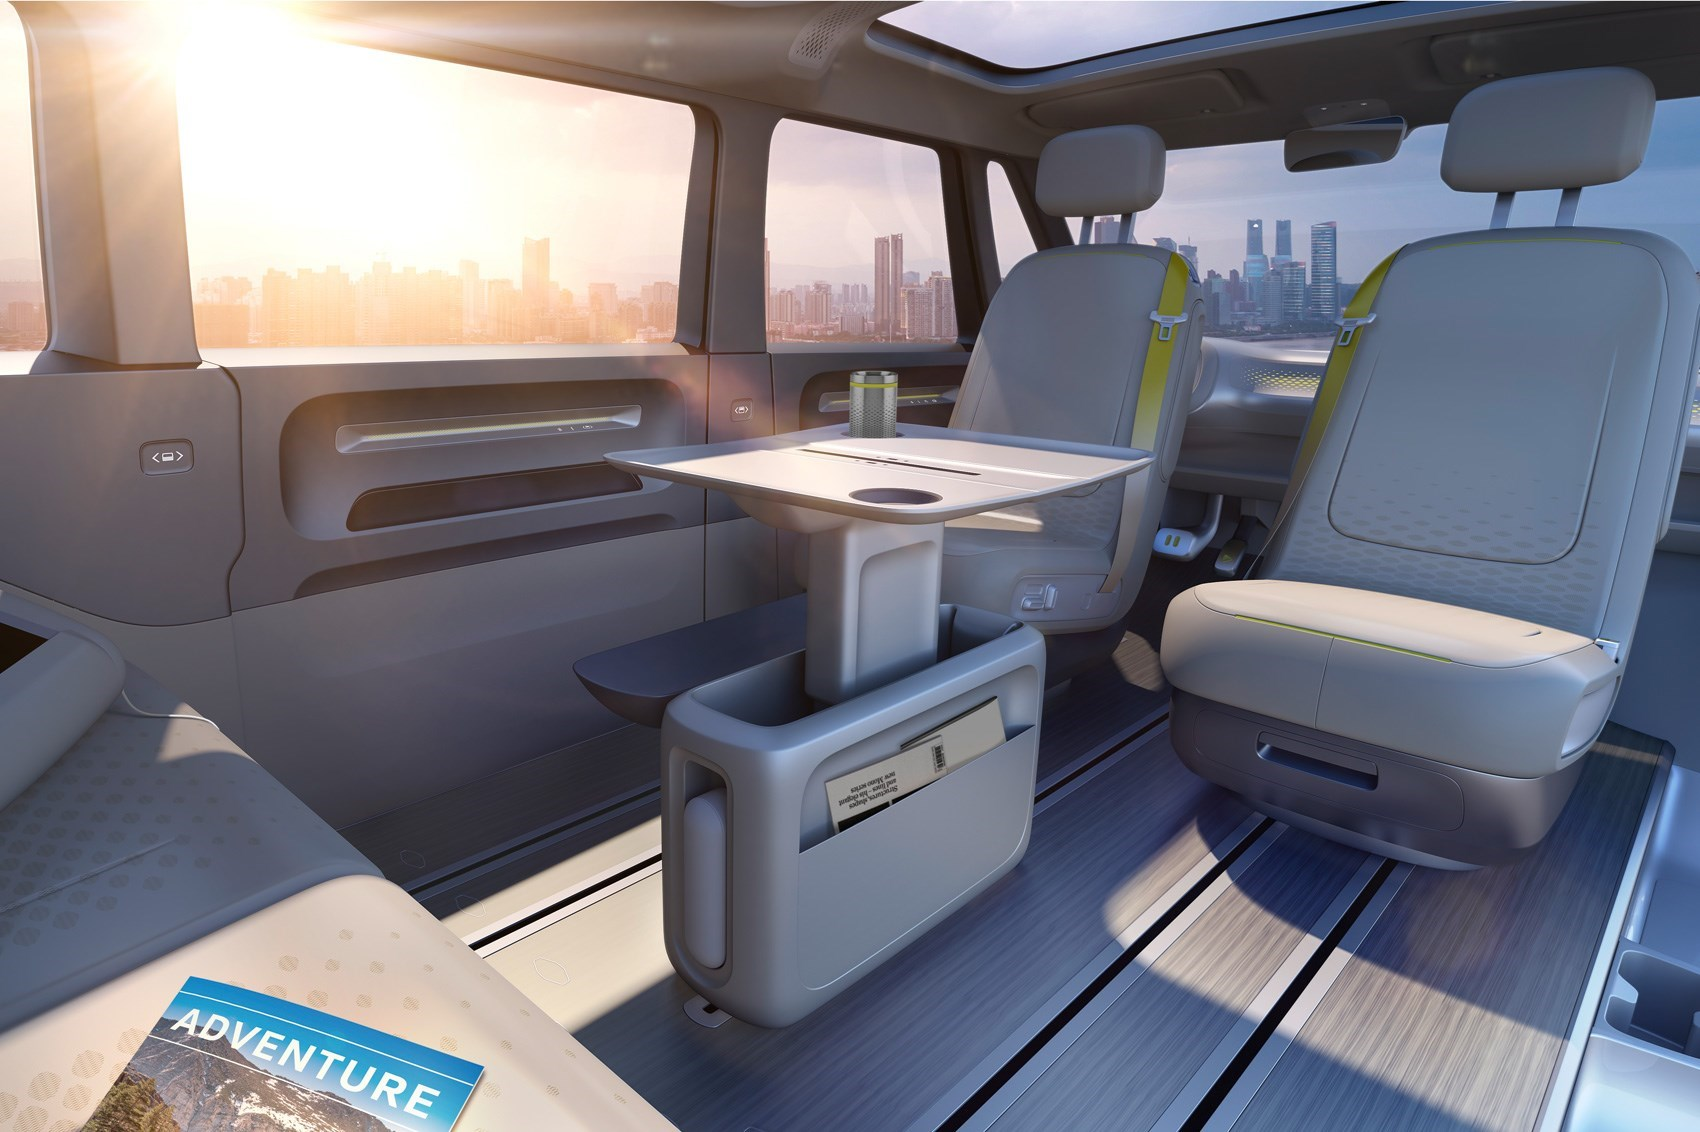 Flexible Seating Is Promised In The Vw Microbus 2022